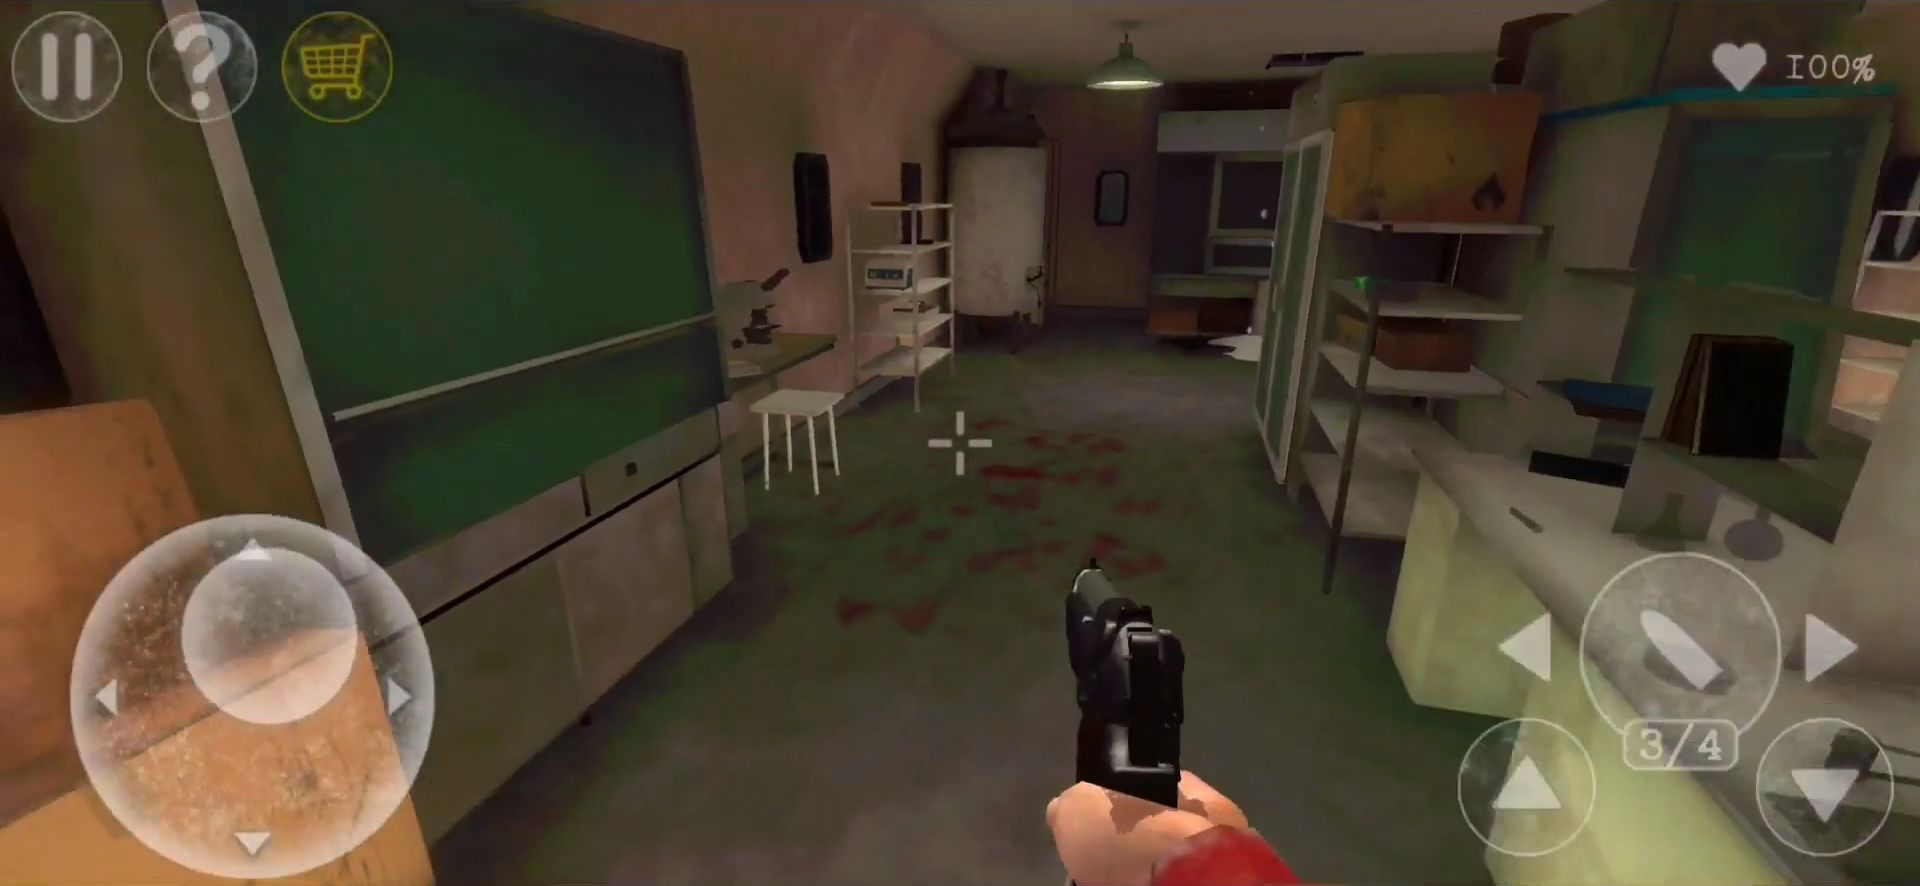 Antarctica 88: Scary Action Survival Horror Game for Android